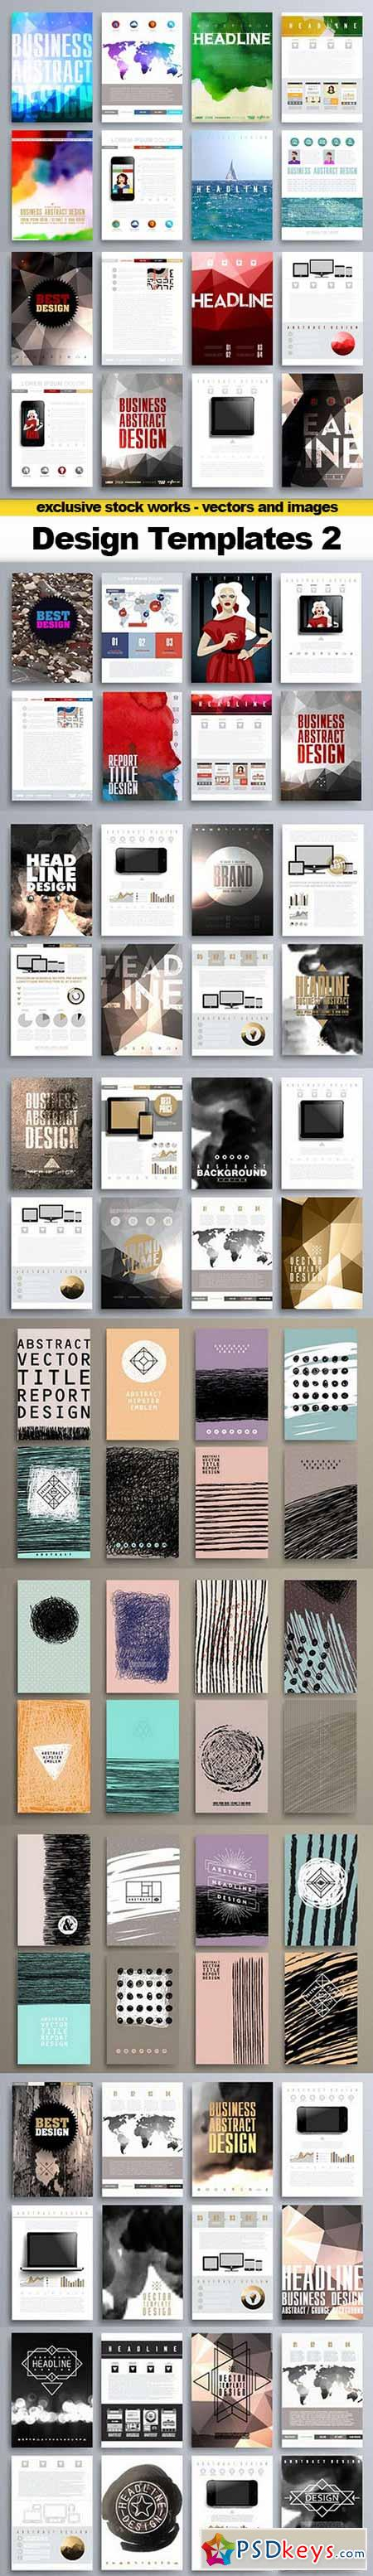 Set of Design Templates for Brochures, Flyers - 20xEPS